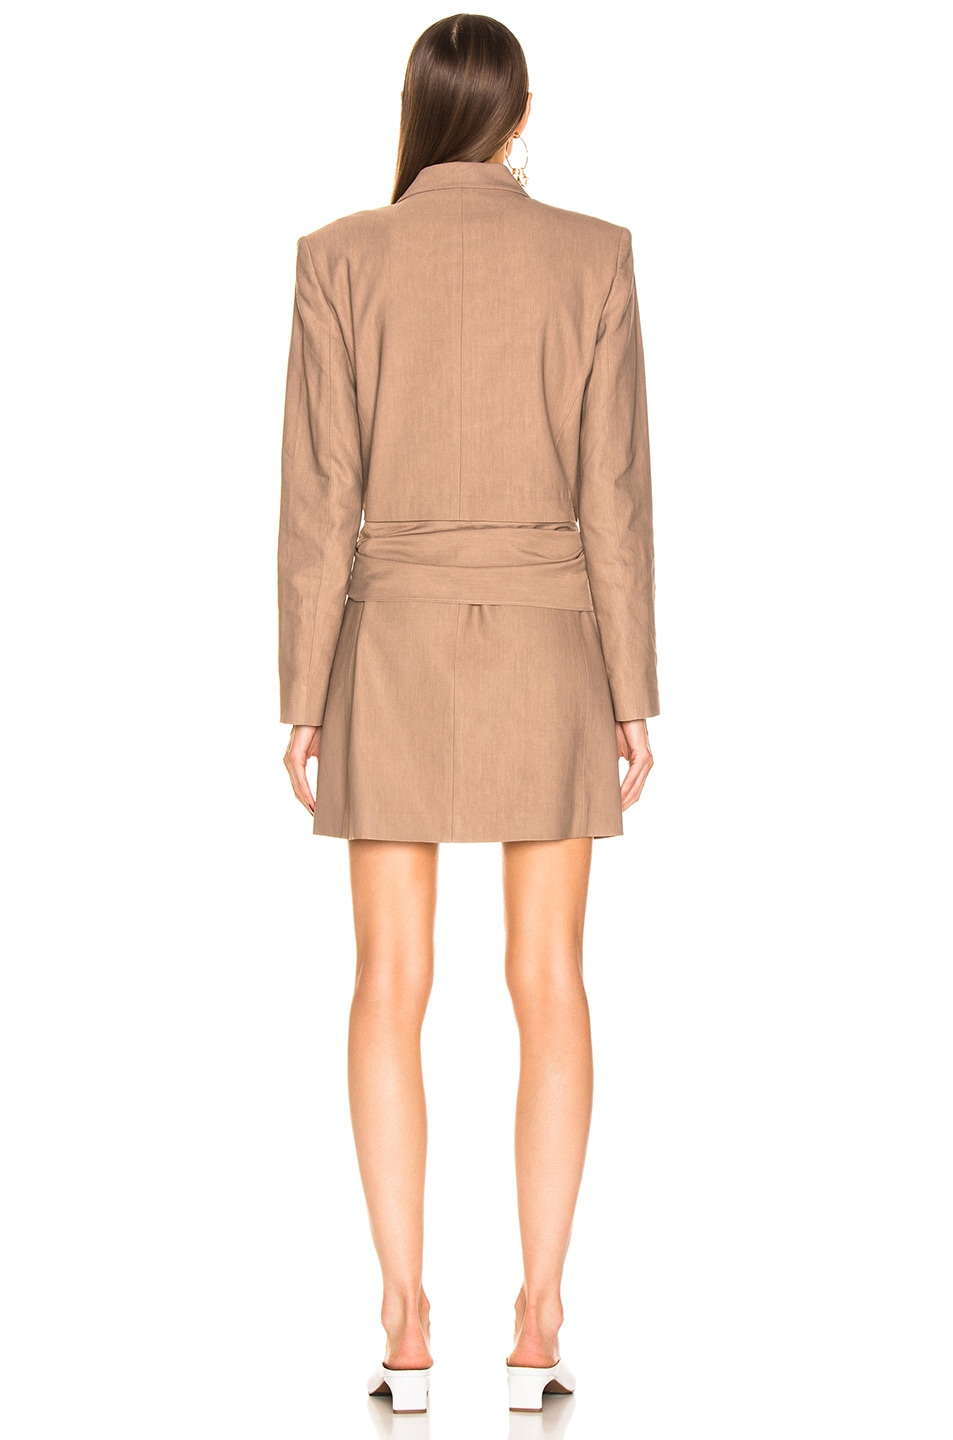 Image 4 of Tibi Linen Suiting Blazer Dress With Detachable Tie in Sable Brown